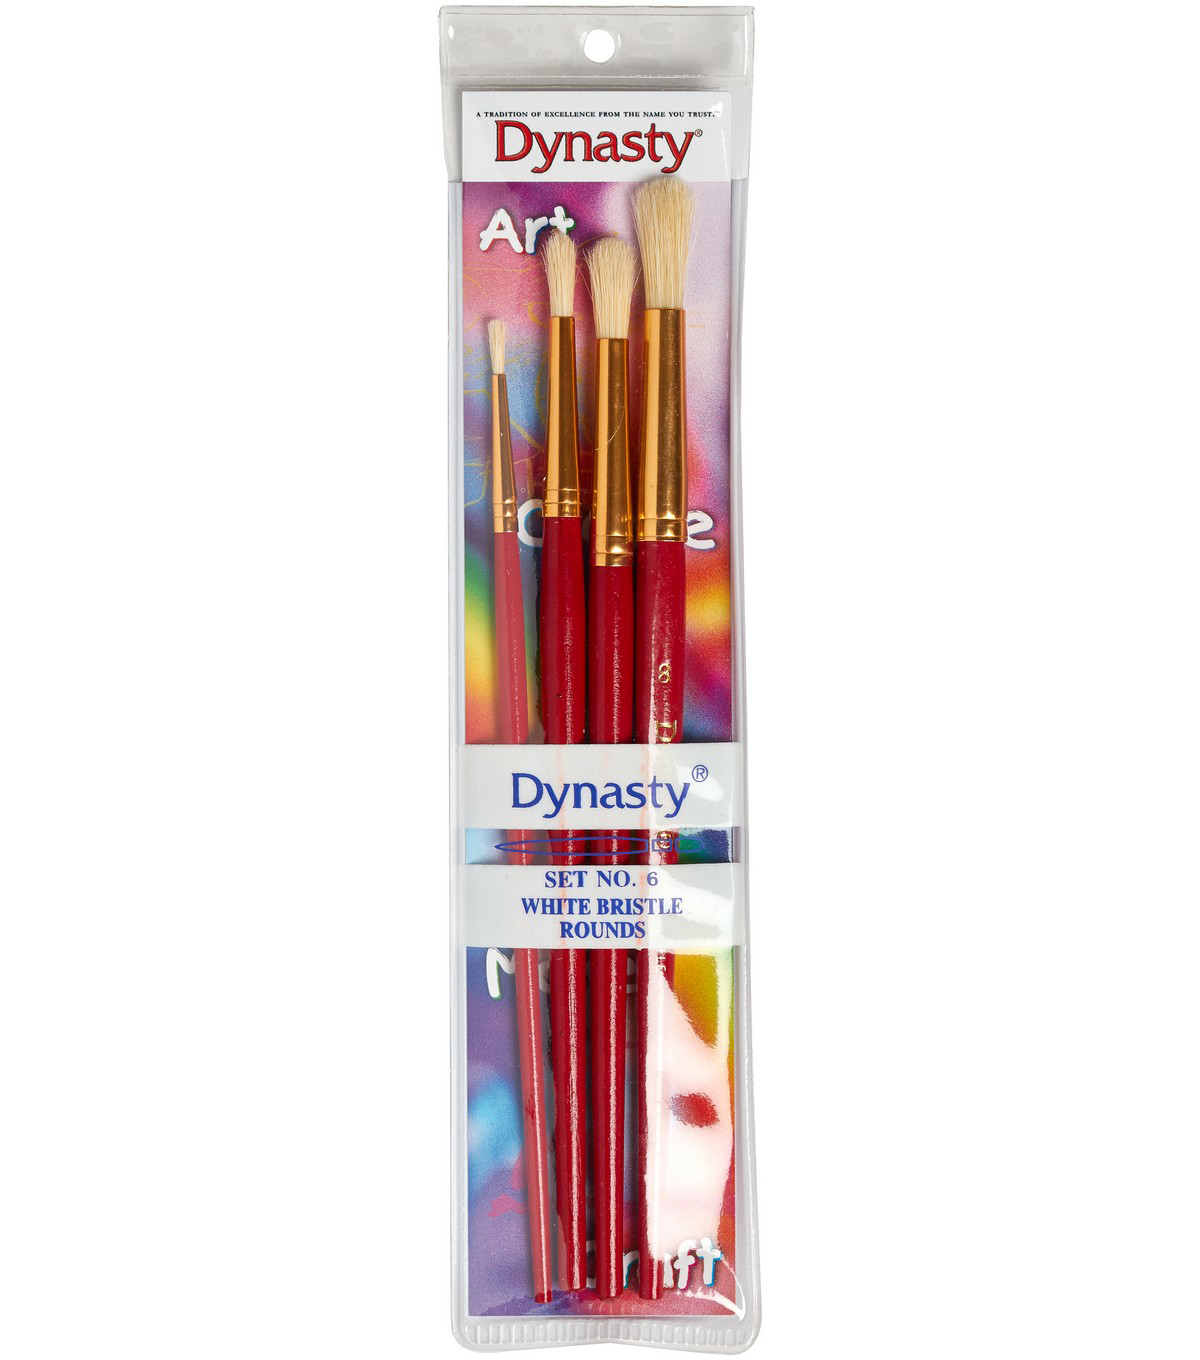 Dynasty Craft & Hobby Brush Sets-White Bristle Rounds Assortment 4/Pkg